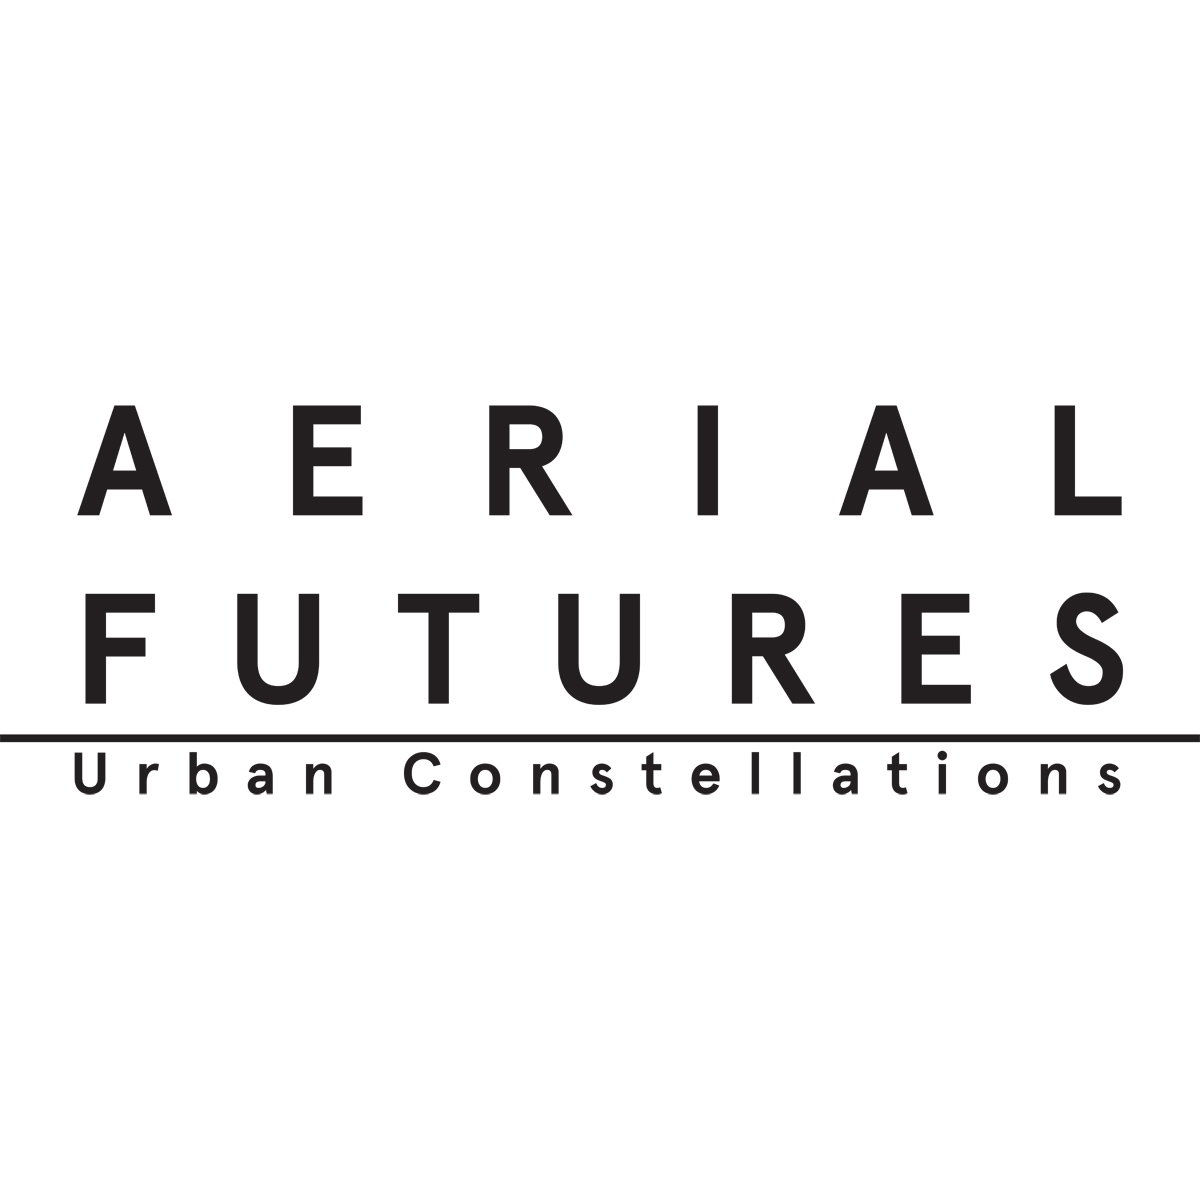 Aerial Futures - Urban Constellations